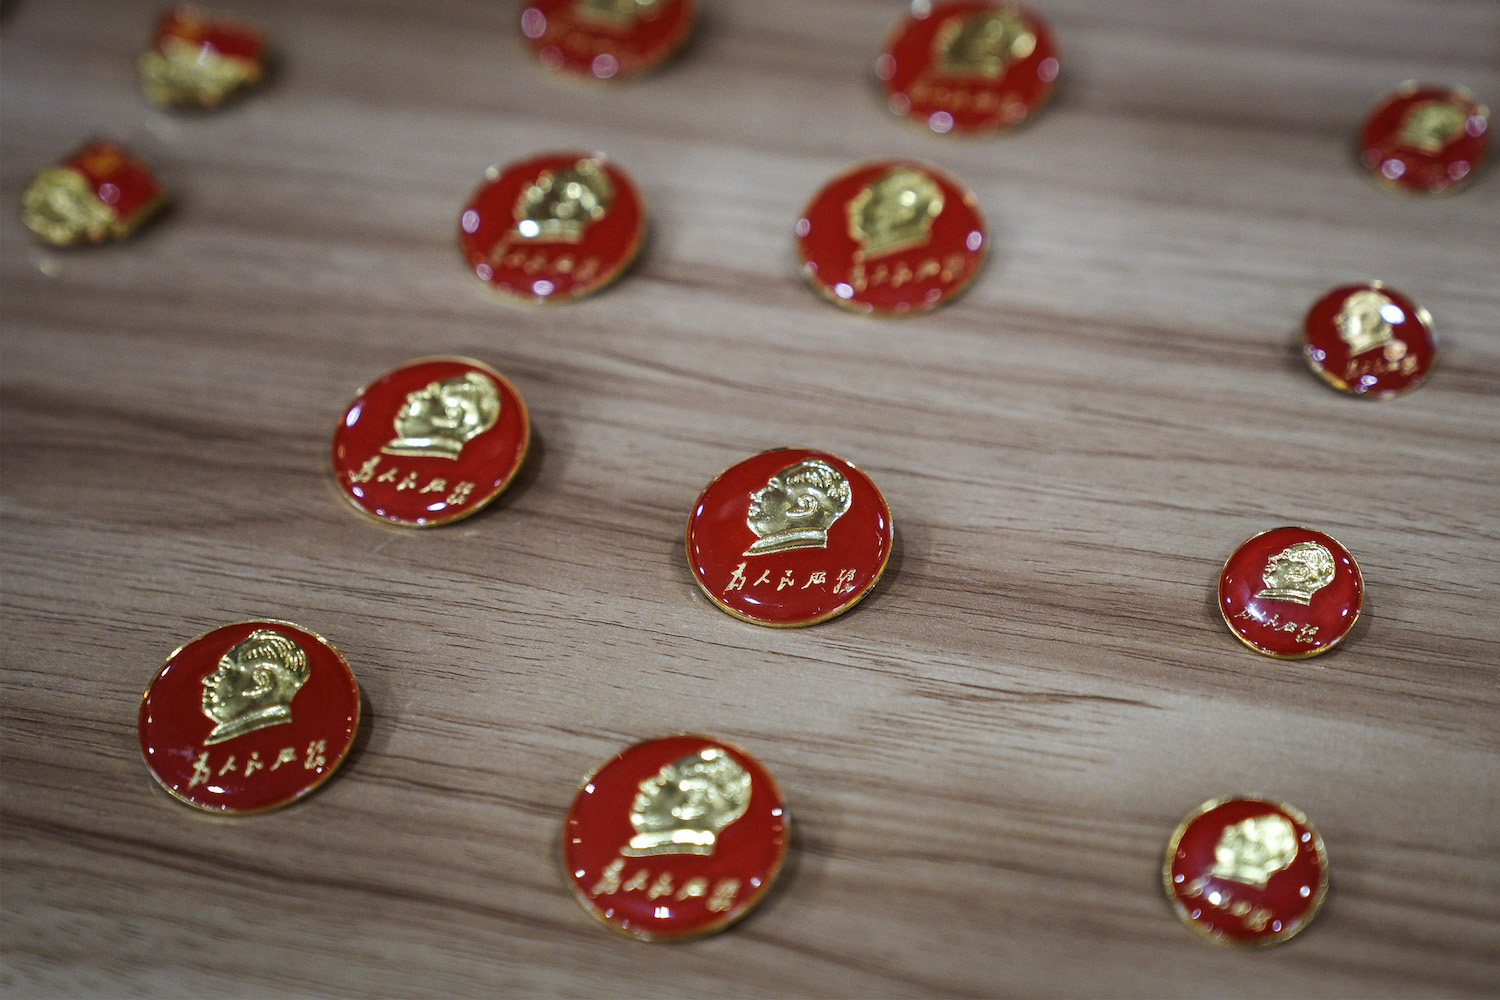 Mao Zedong badges are seen in the souvenir shop of his former residence on Oct. 7, 2020, in Wuhan, China.